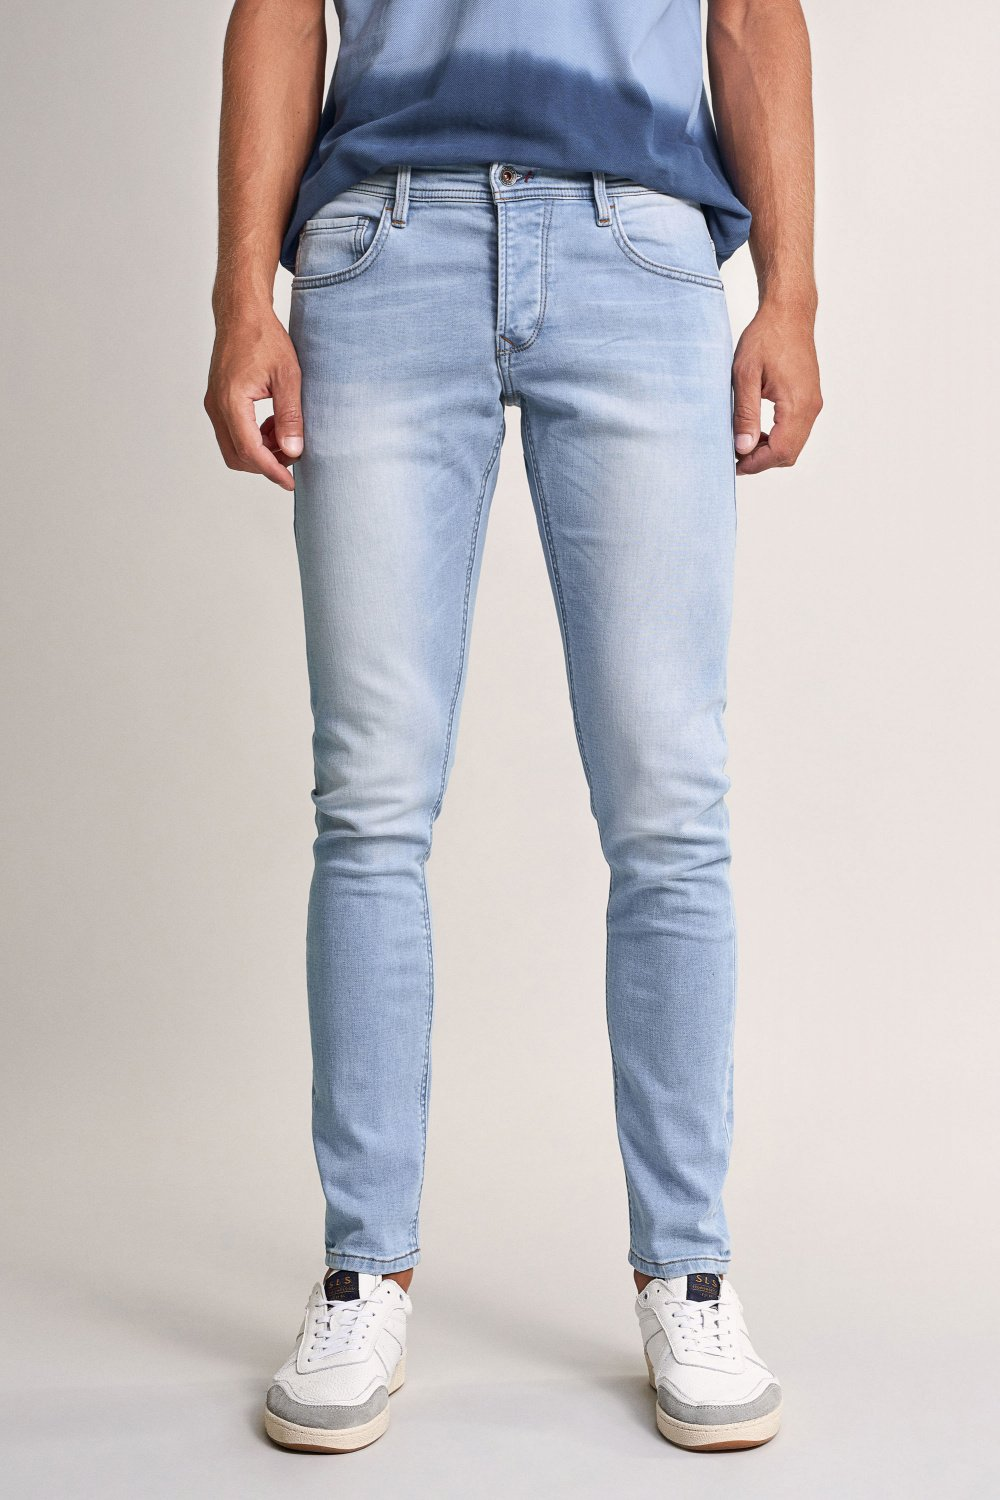 Jogger slim premium wash light rinse jeans - Salsa